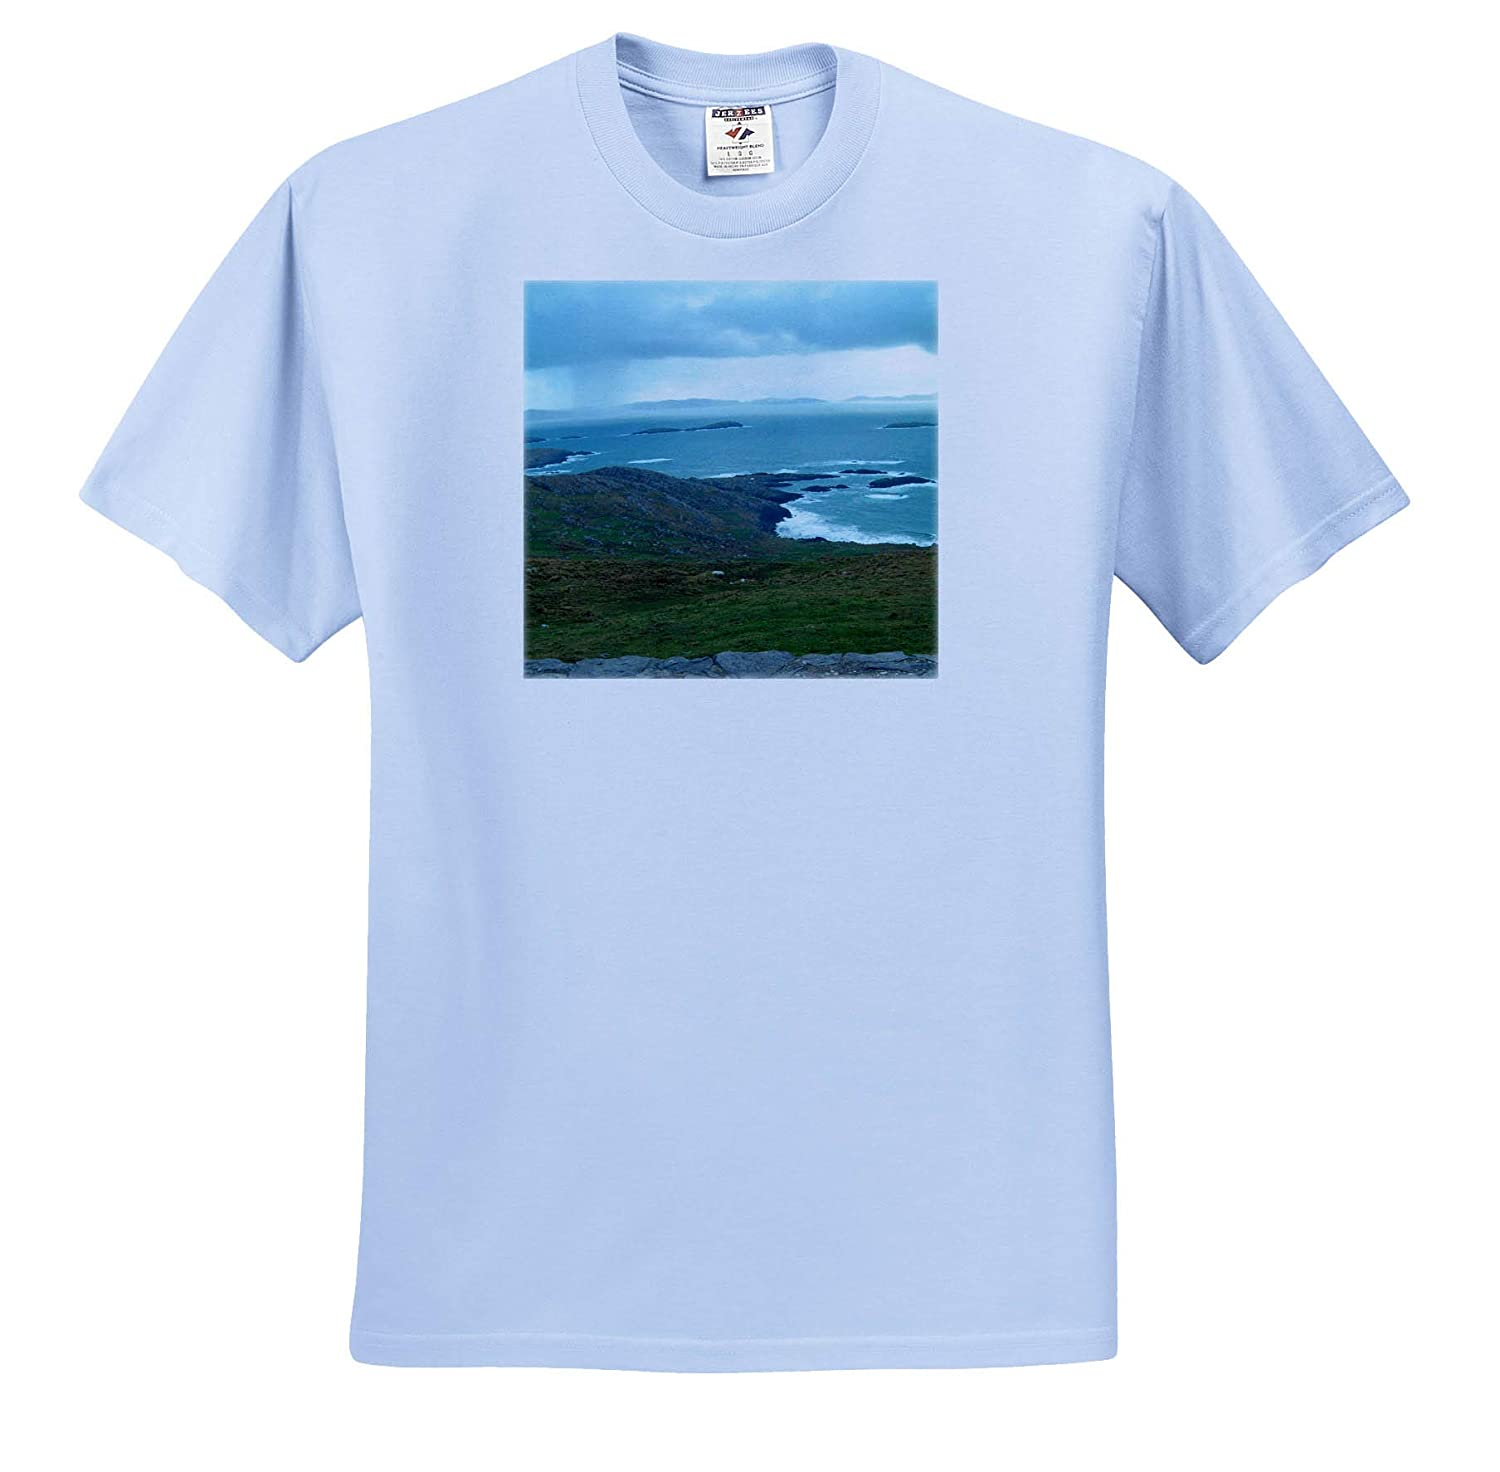 3dRose Jos Fauxtographee T-Shirts Beautiful Scenery in Ireland with Green Grass and Blue Water Ireland Wetland